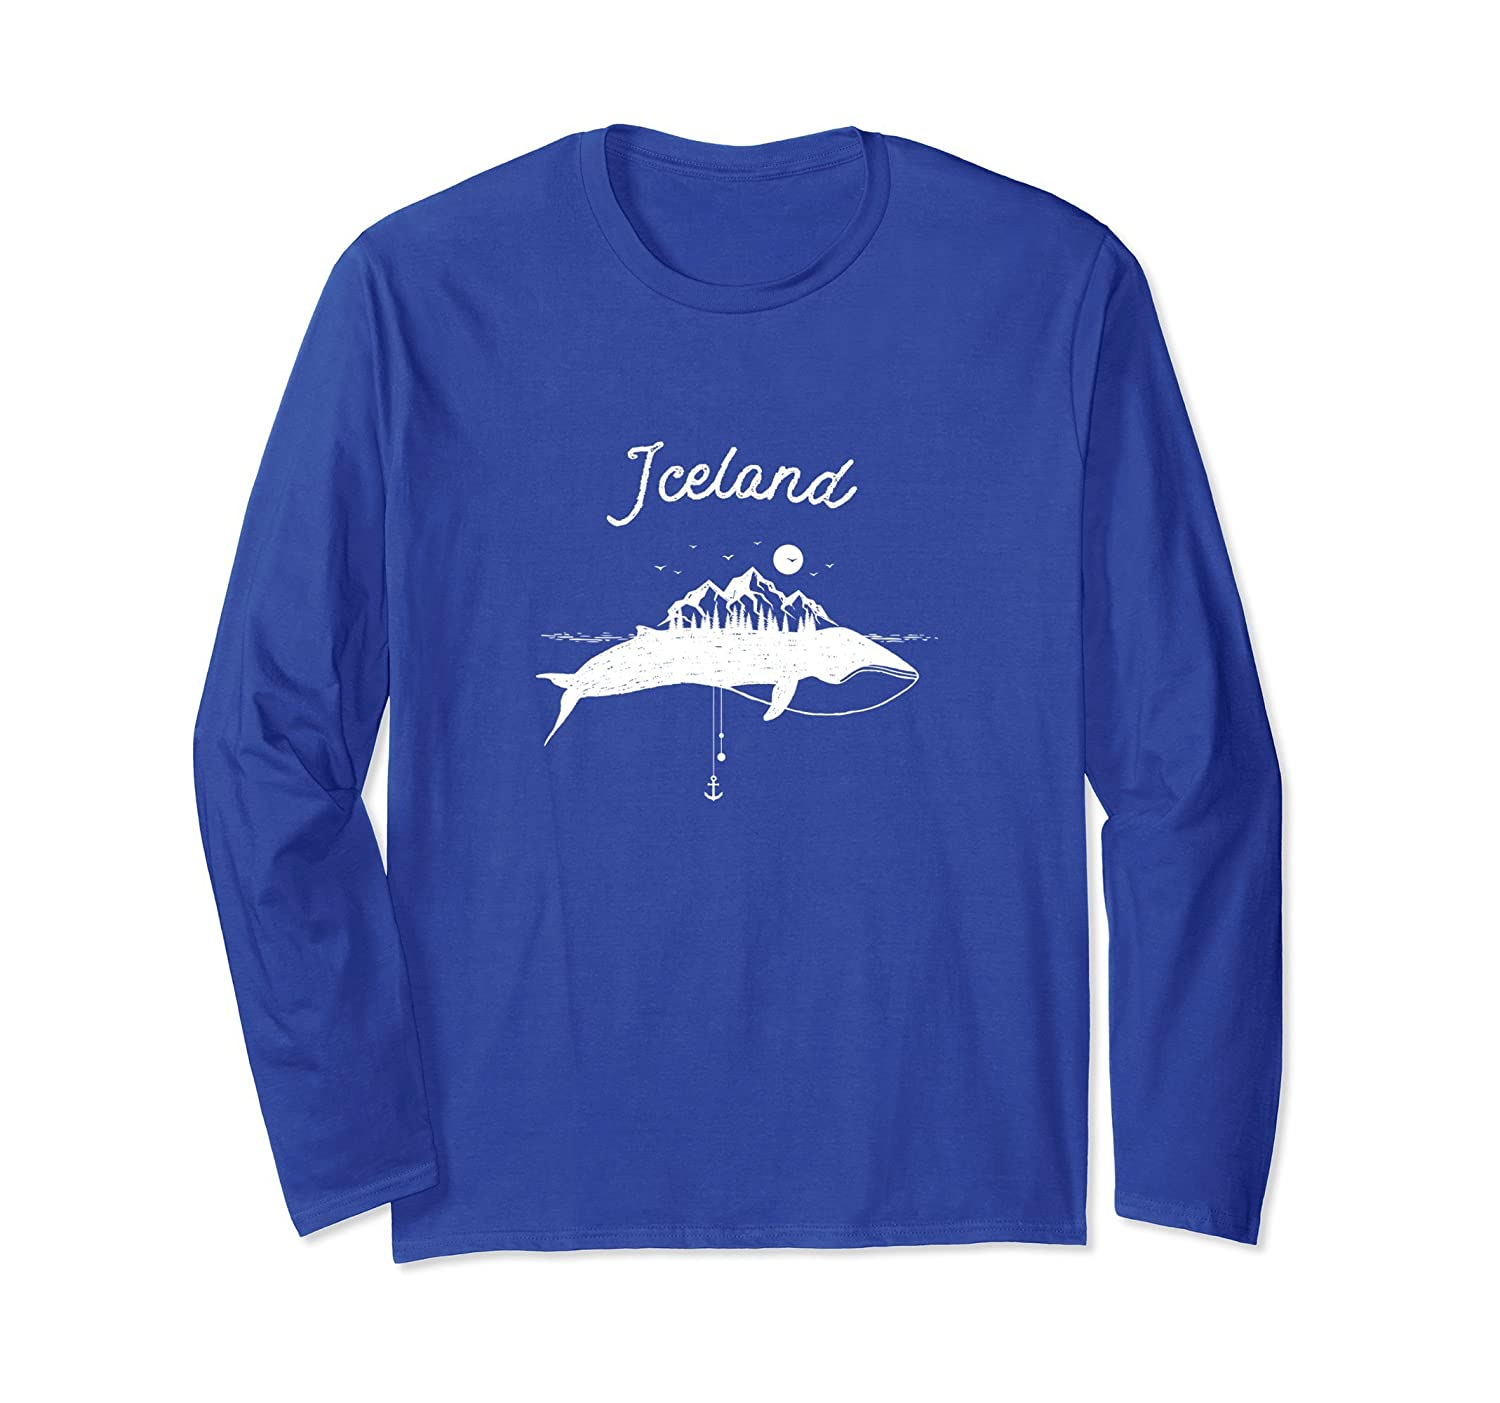 Vintage Iceland Shirt with Humpback Whale-ah my shirt one gift